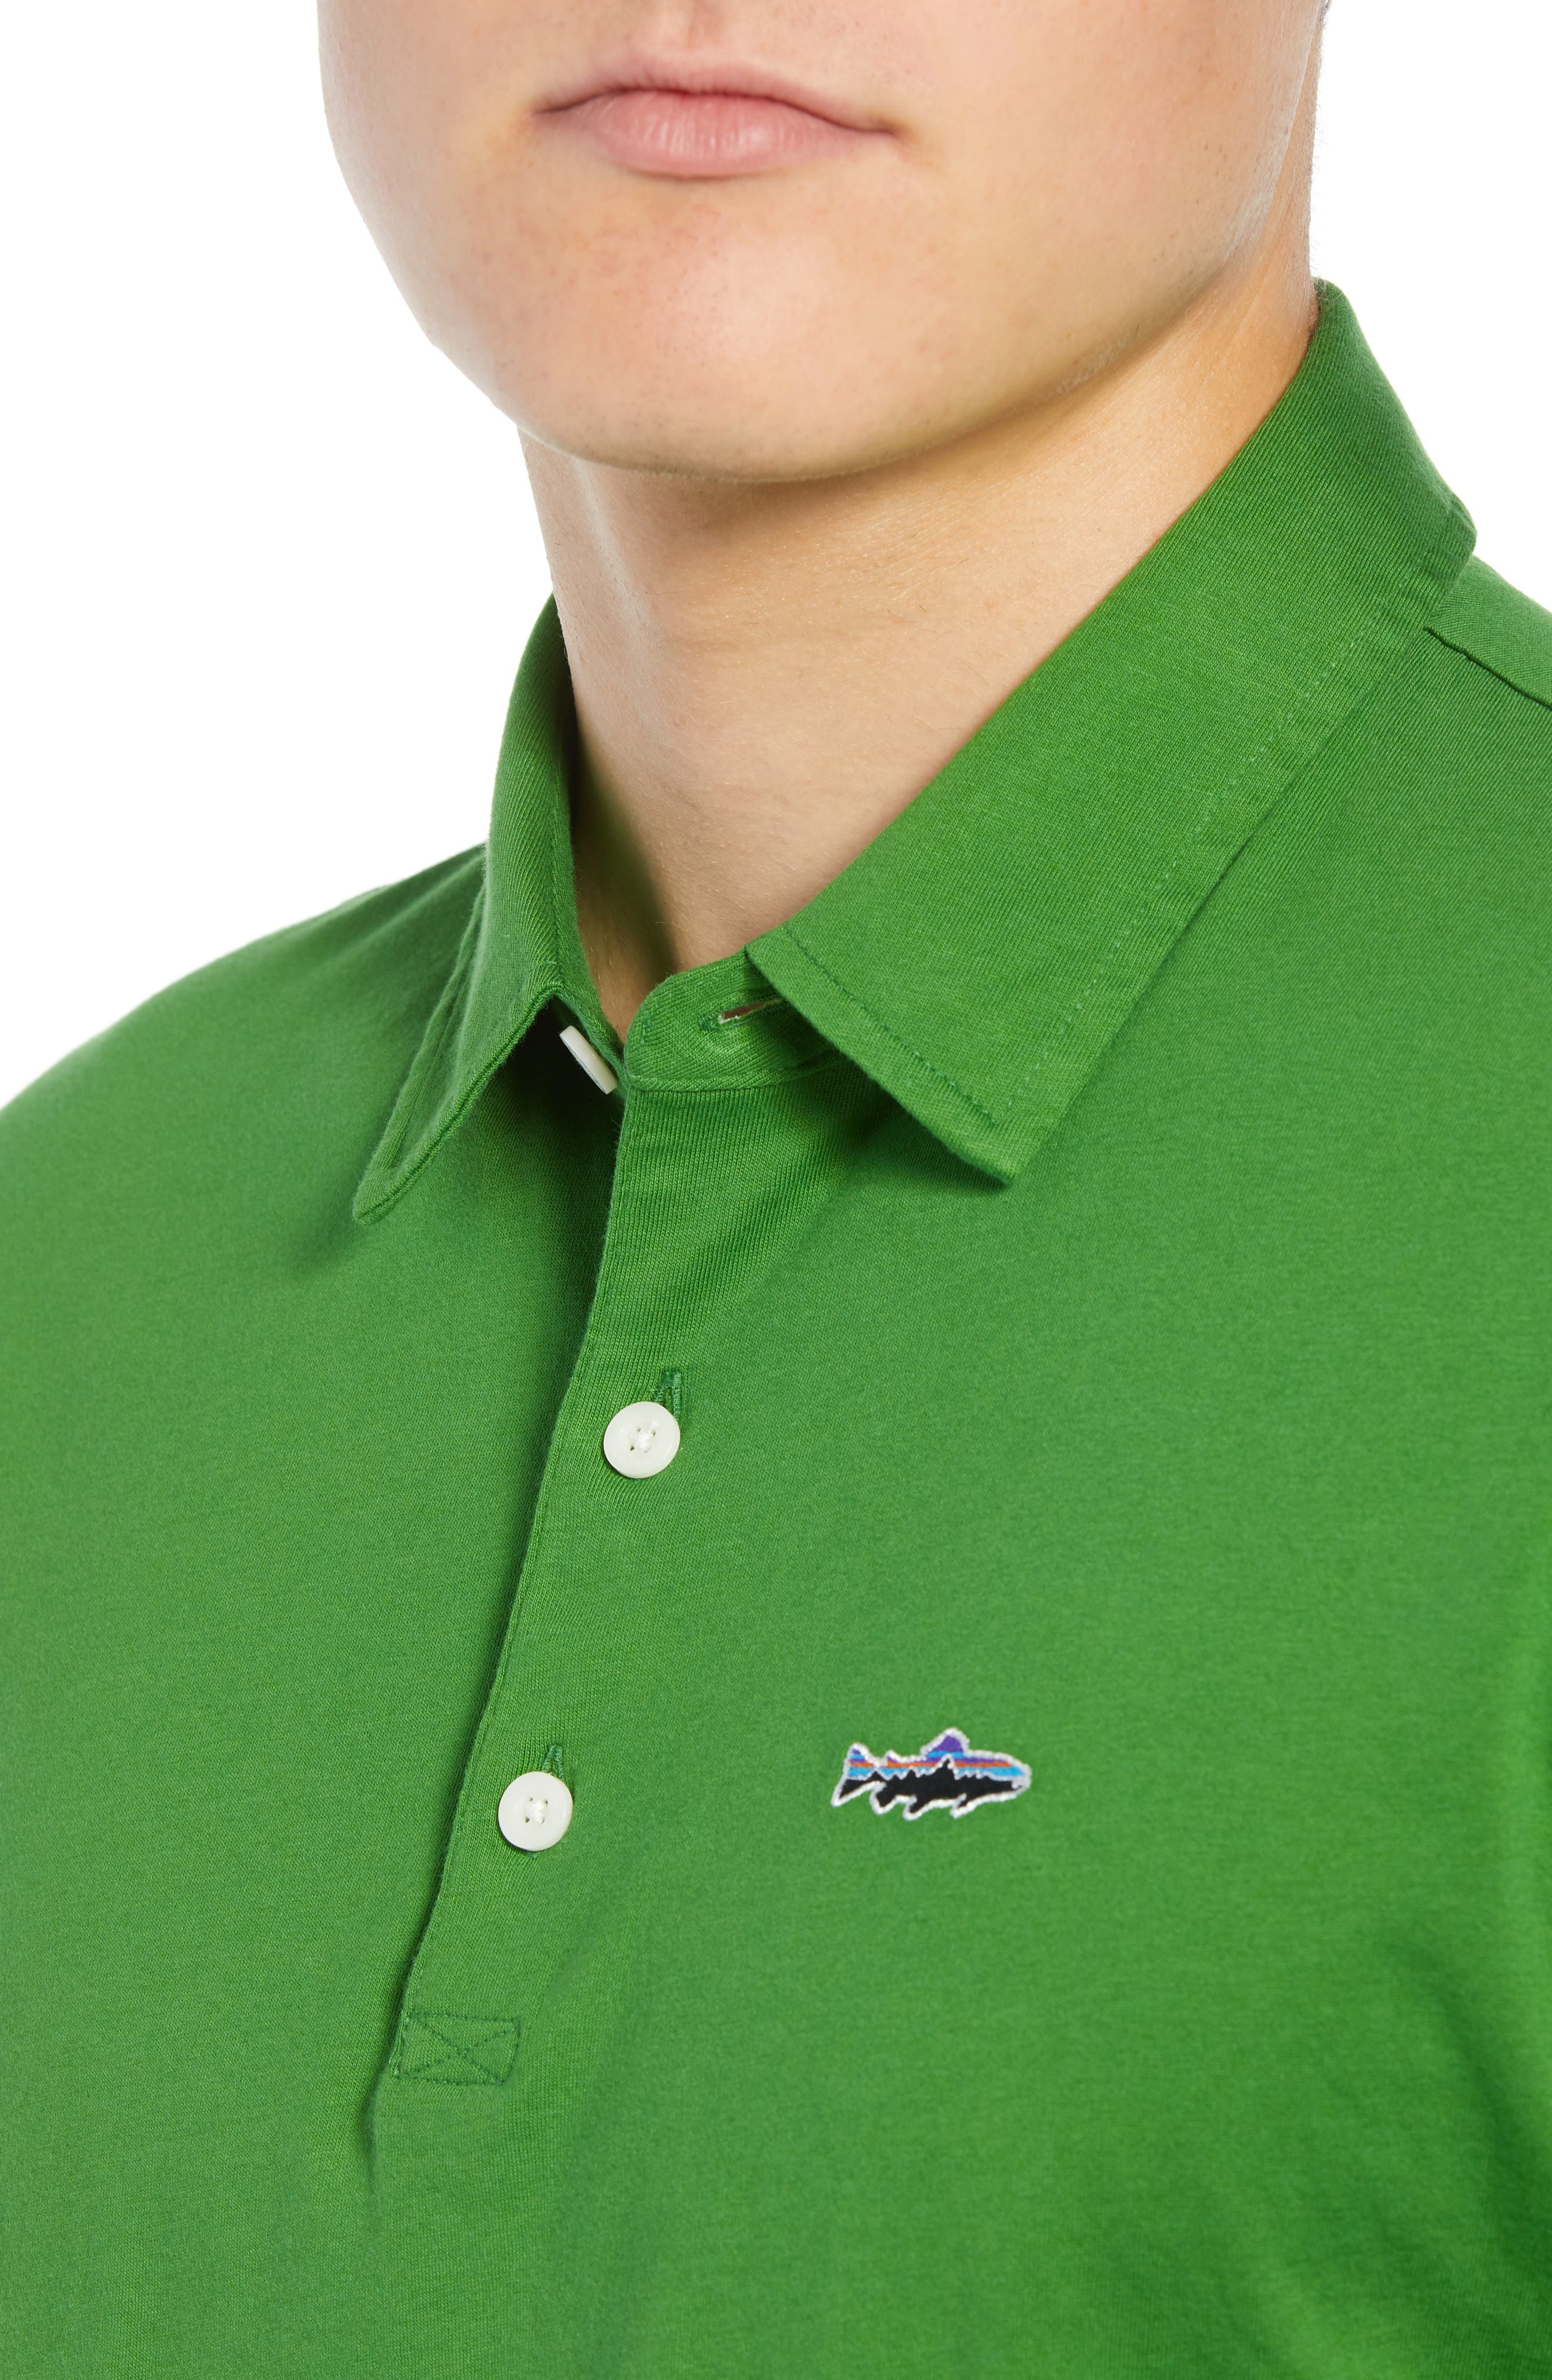 'Trout Fitz Roy' Organic Cotton Polo,                             Alternate thumbnail 4, color,                             MYRTLE GREEN